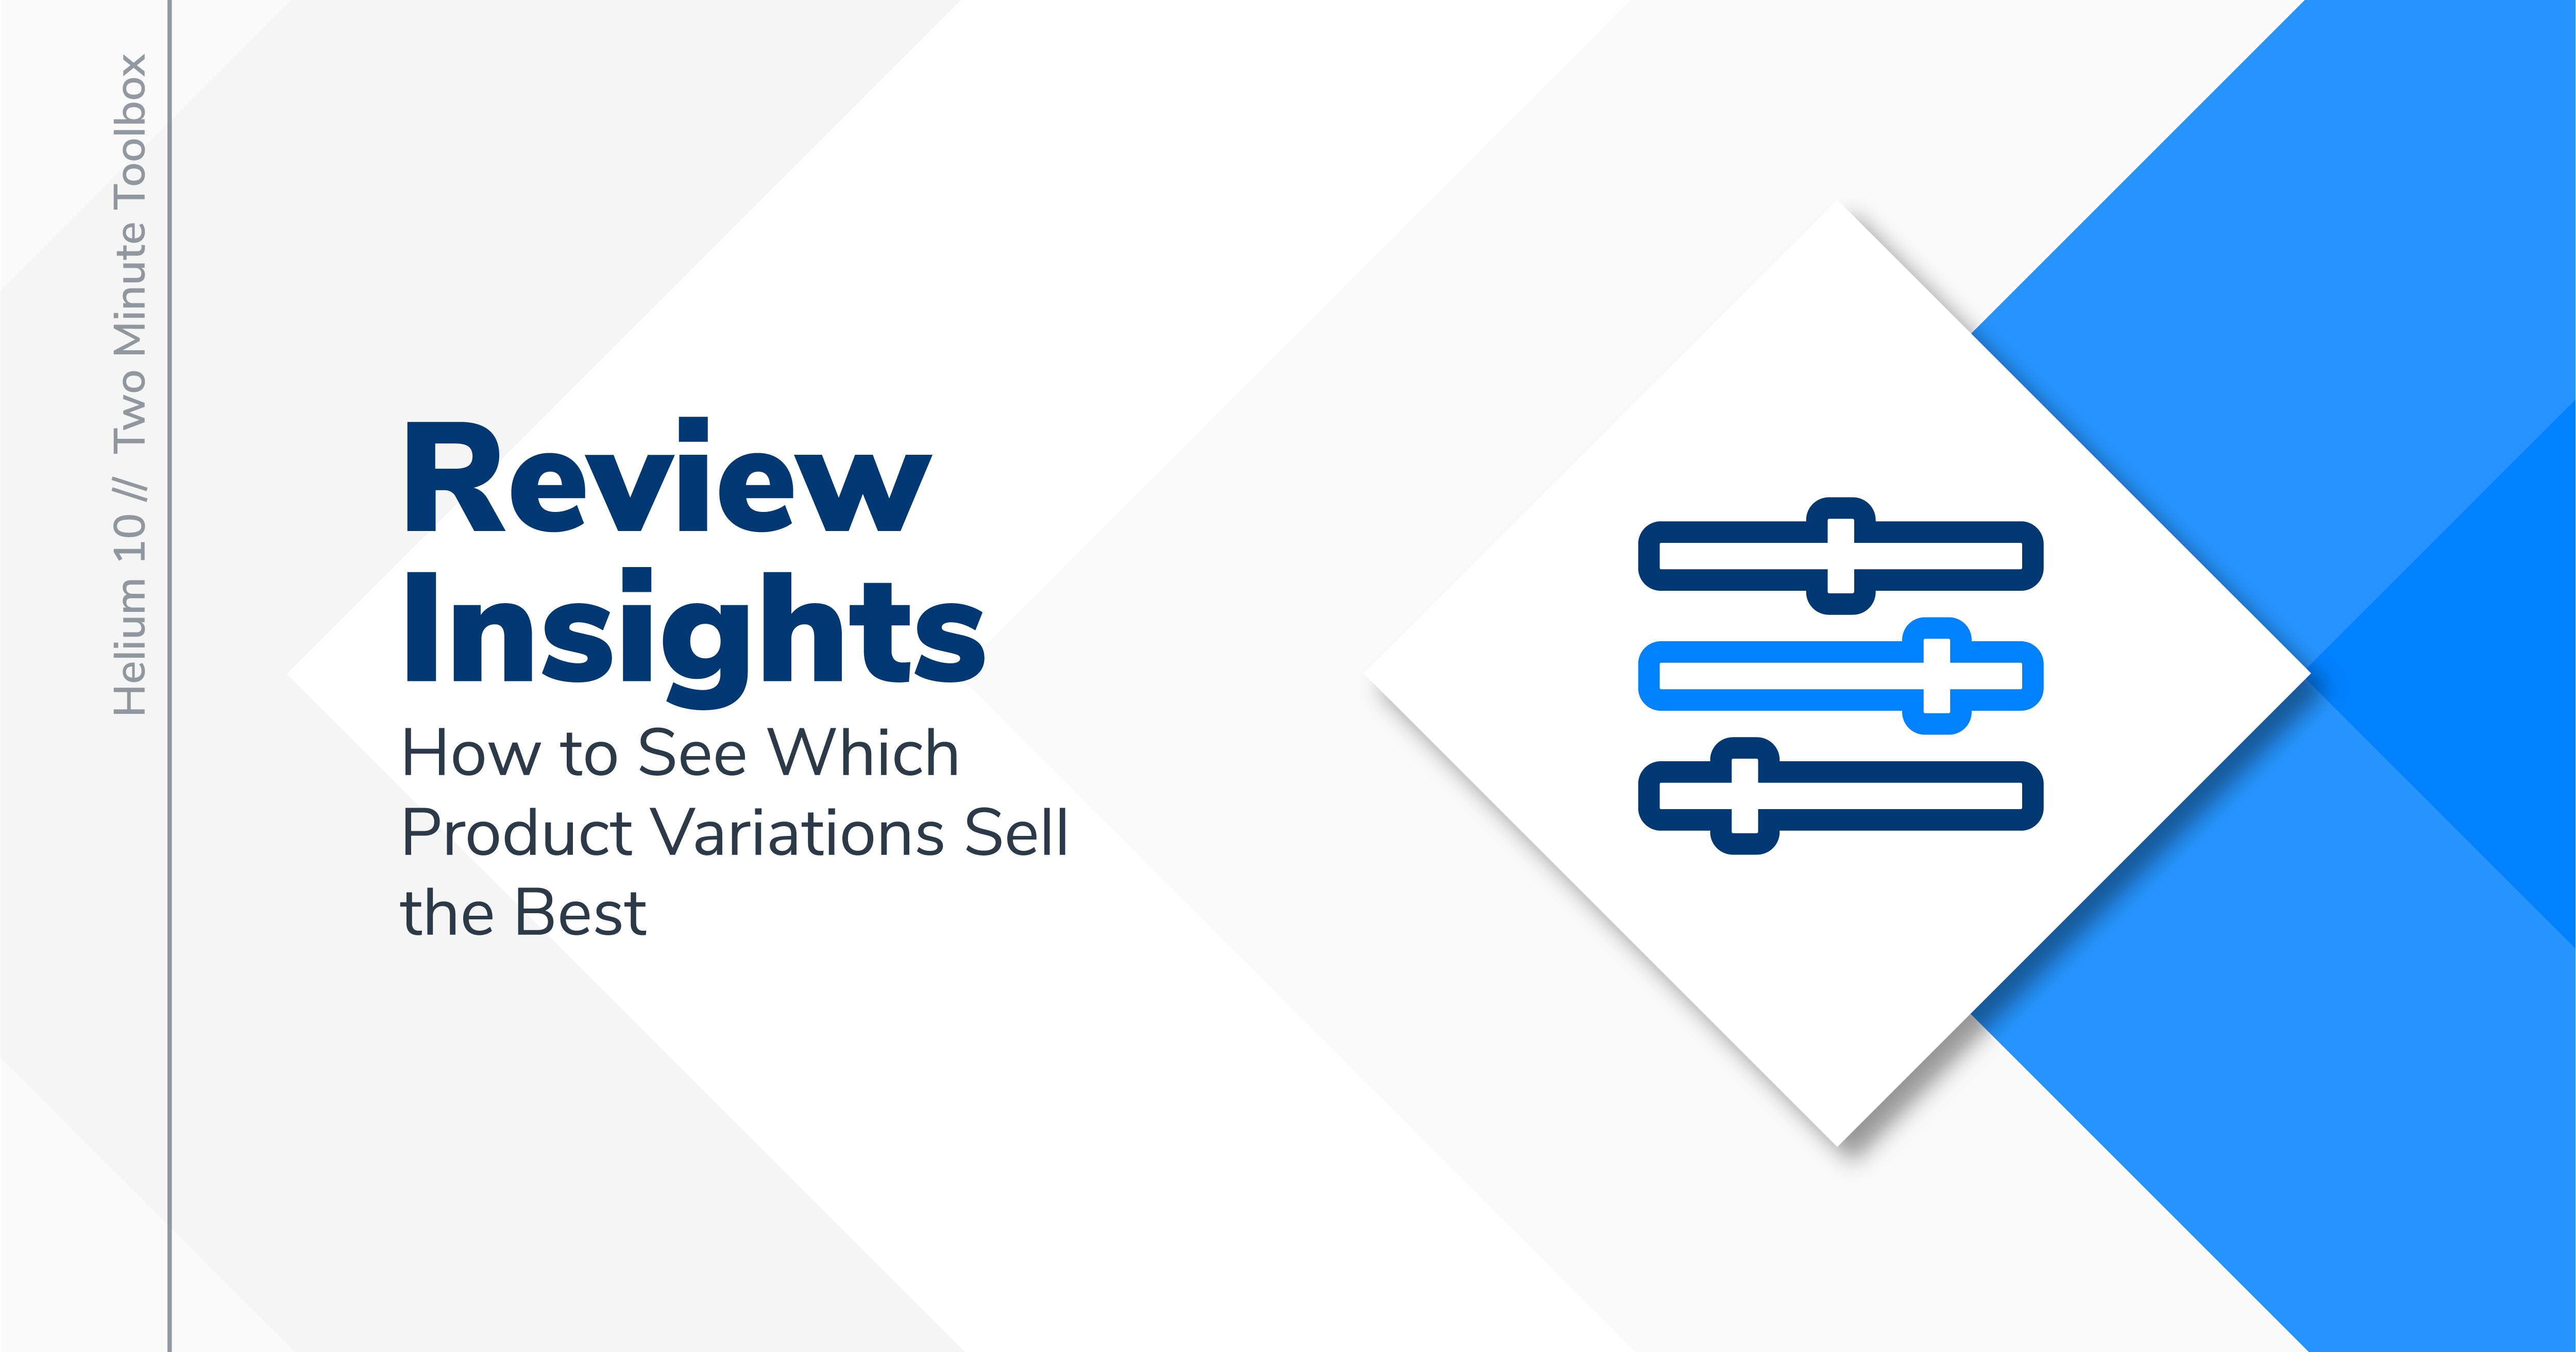 stylized icon of filter sliders with text: Review Insights - how to see which product variations sell the best